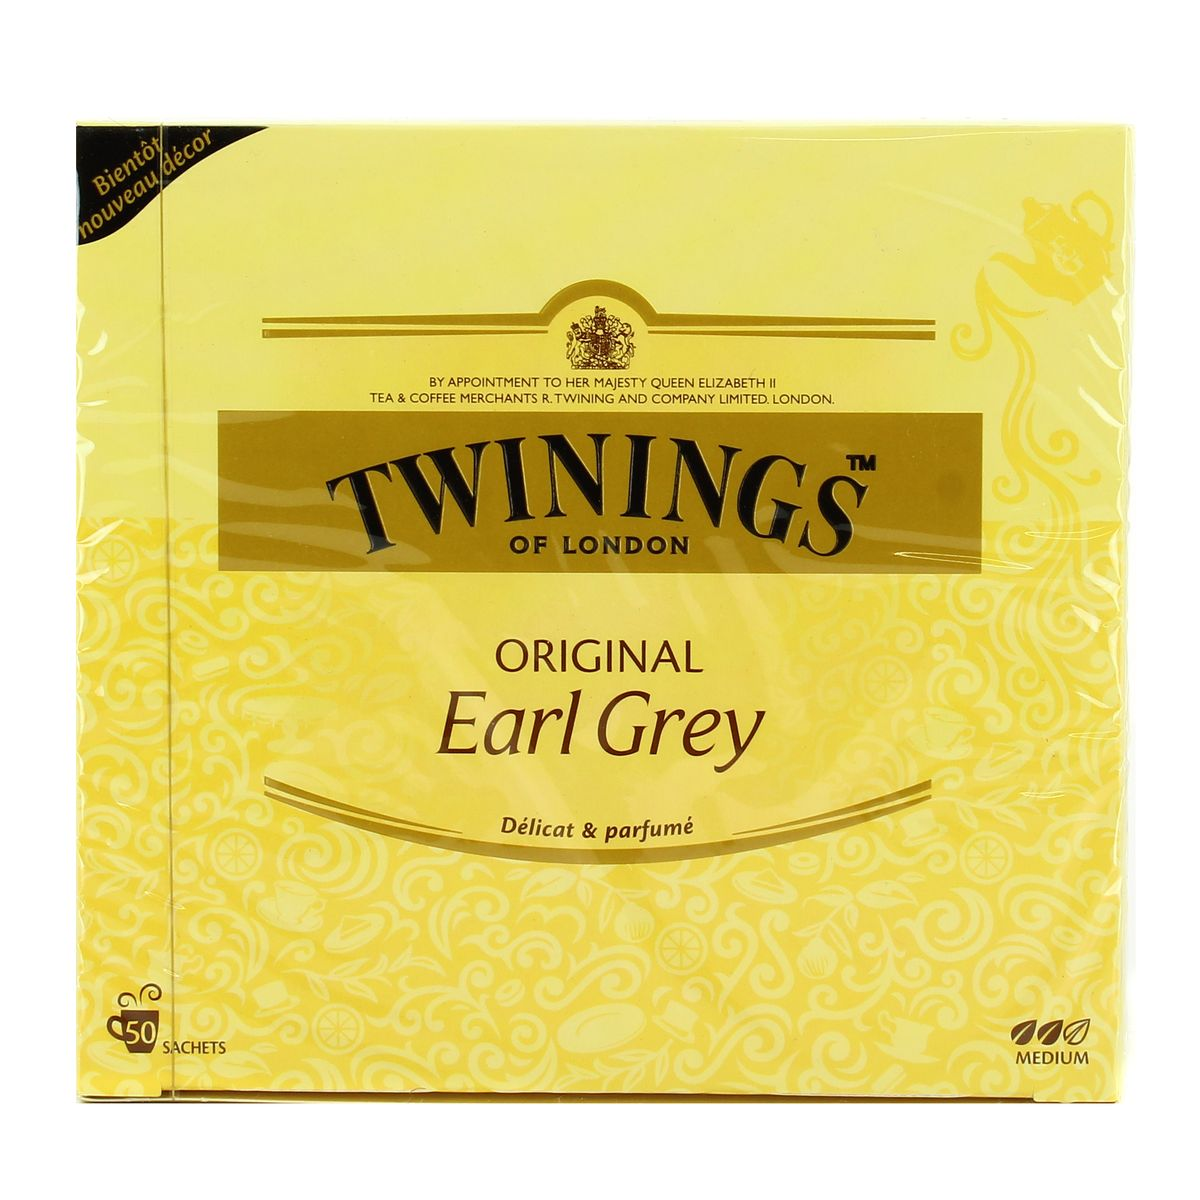 The Twin Orig.earl Grey 100g